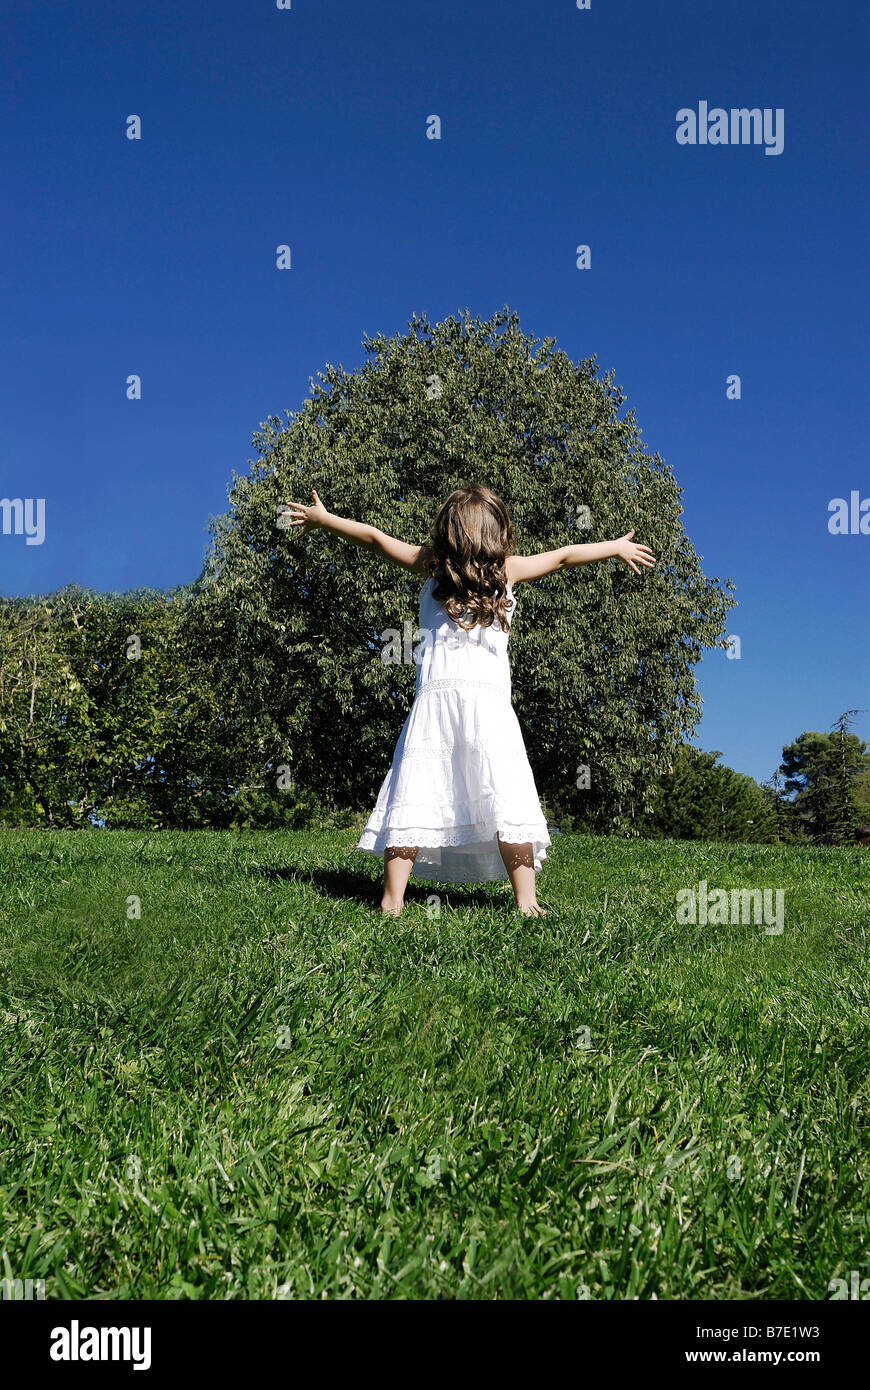 5 years old girl standing by a tree - Stock Image